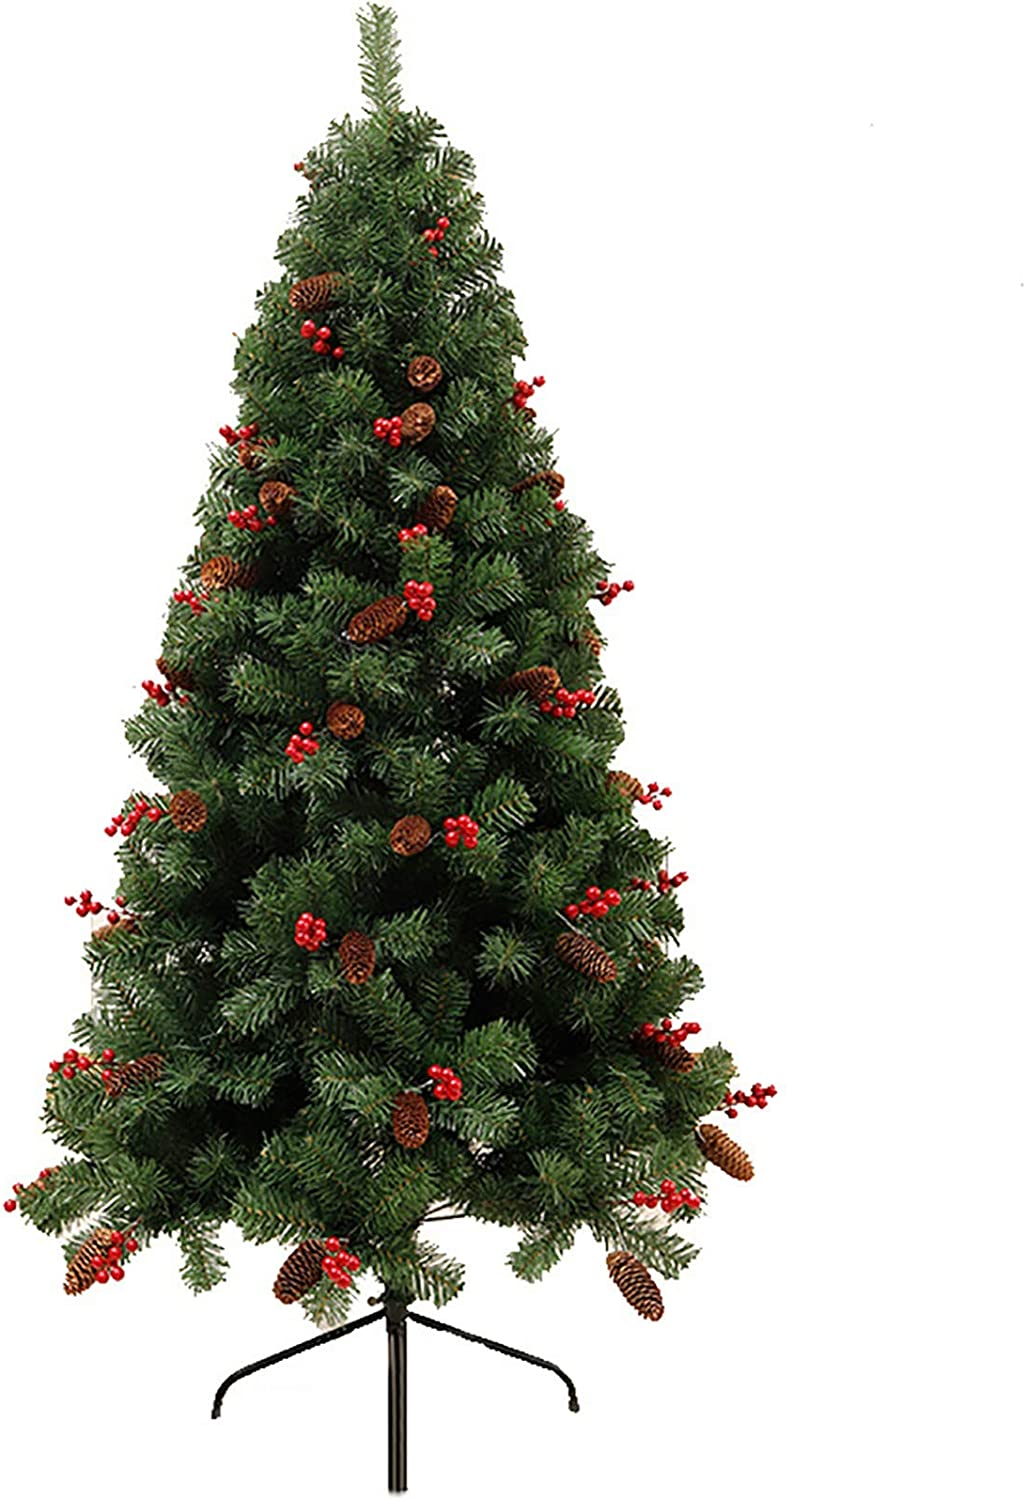 ZZZTWO Artificial Christmas Tree Award It is very popular Decorated Pine Xmas with